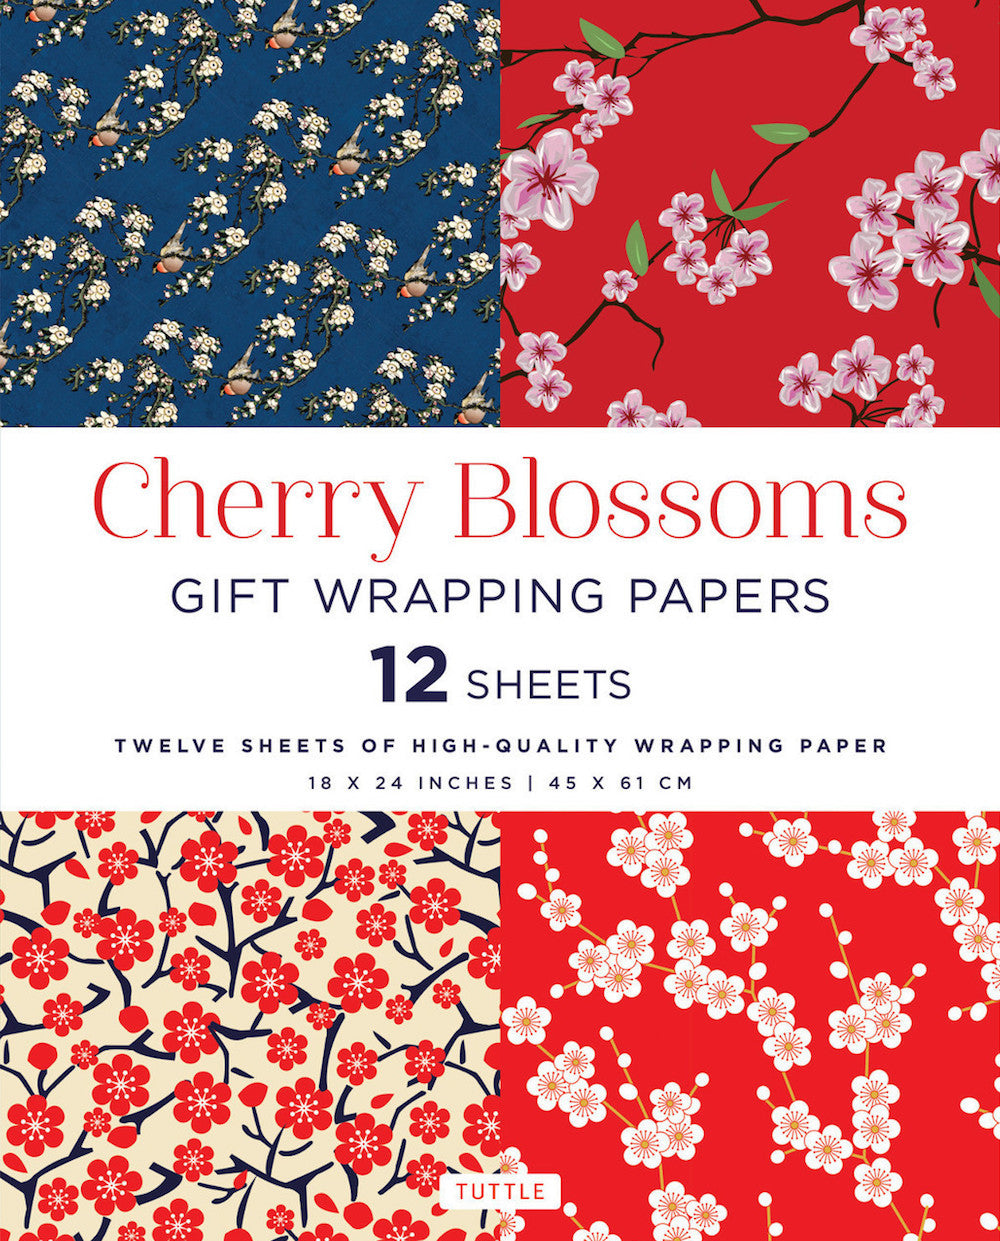 Cherry Blossom Gift Wrapping Paper